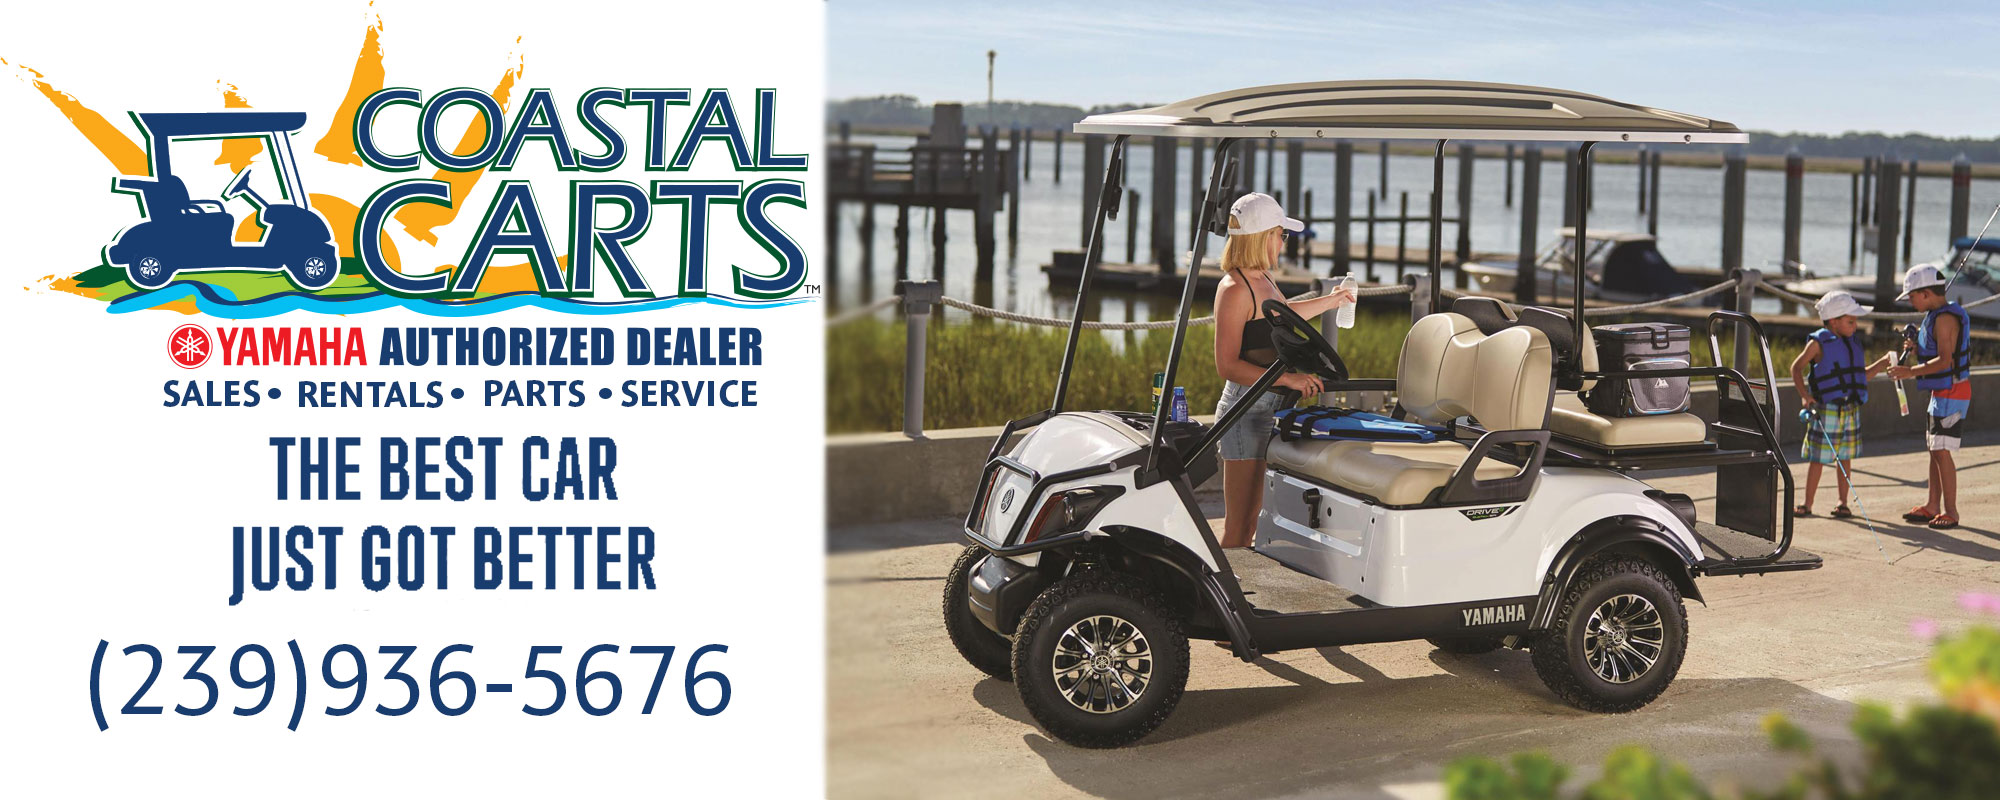 Golf Cart Dealership including Service, Repair, and Rentals